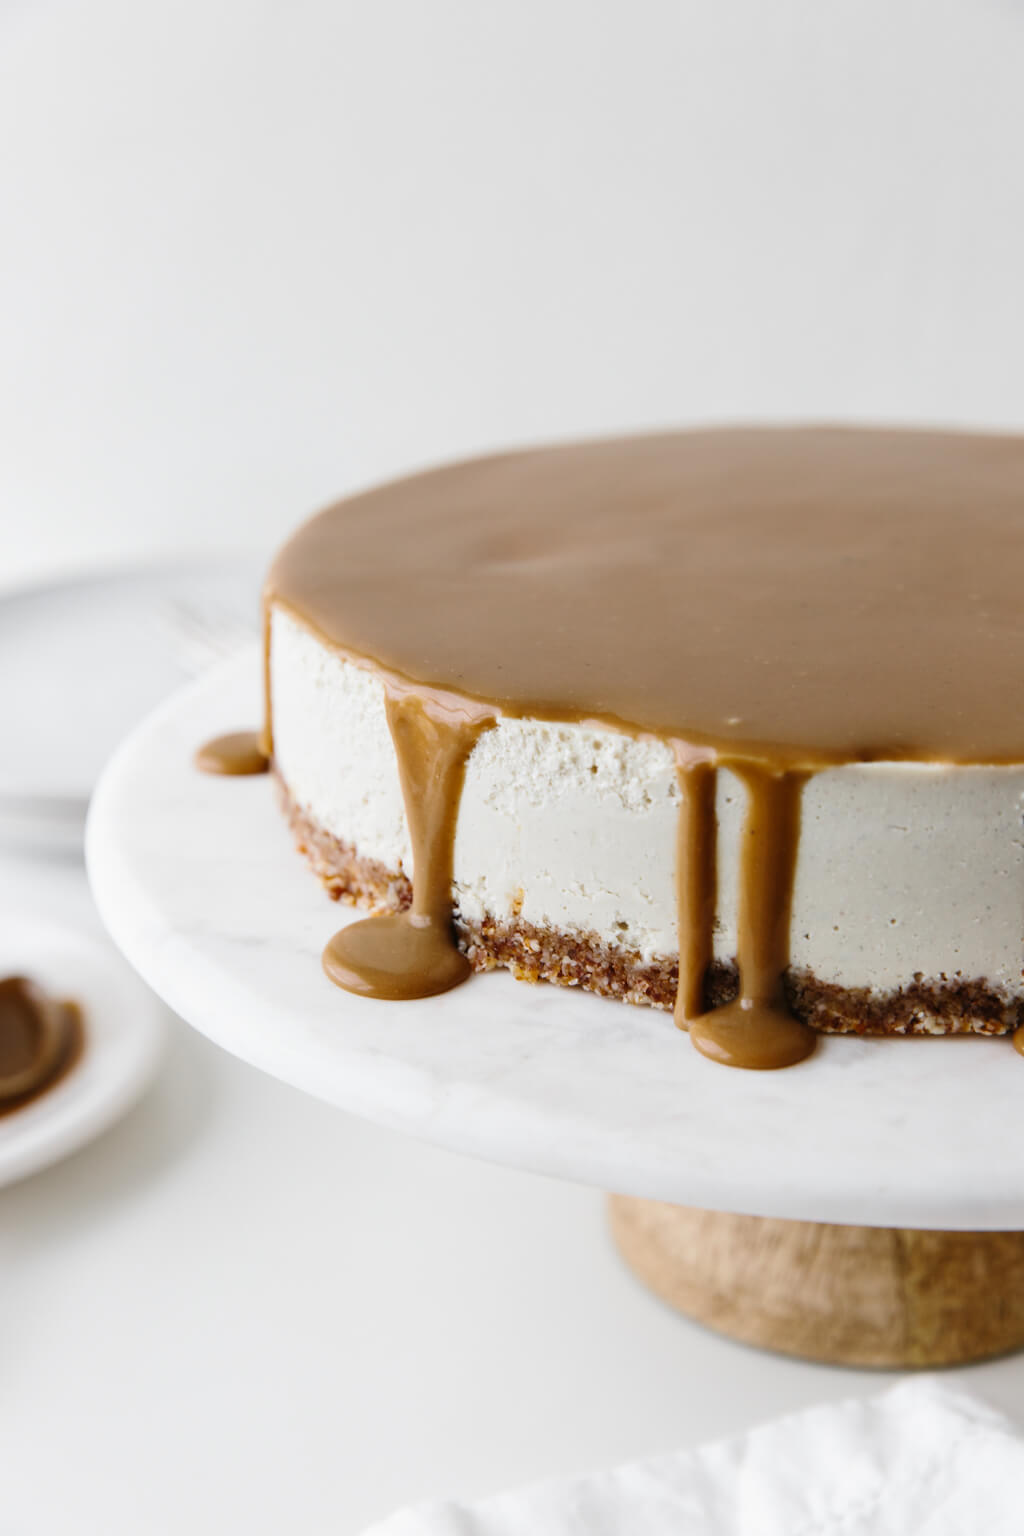 This gluten-free Vegan Caramel Cheesecake recipe is drizzled with the most amazing salted caramel sauce. The vegan cheesecake is simply made from cashews that have soaked overnight and it's super creamy and decadent.